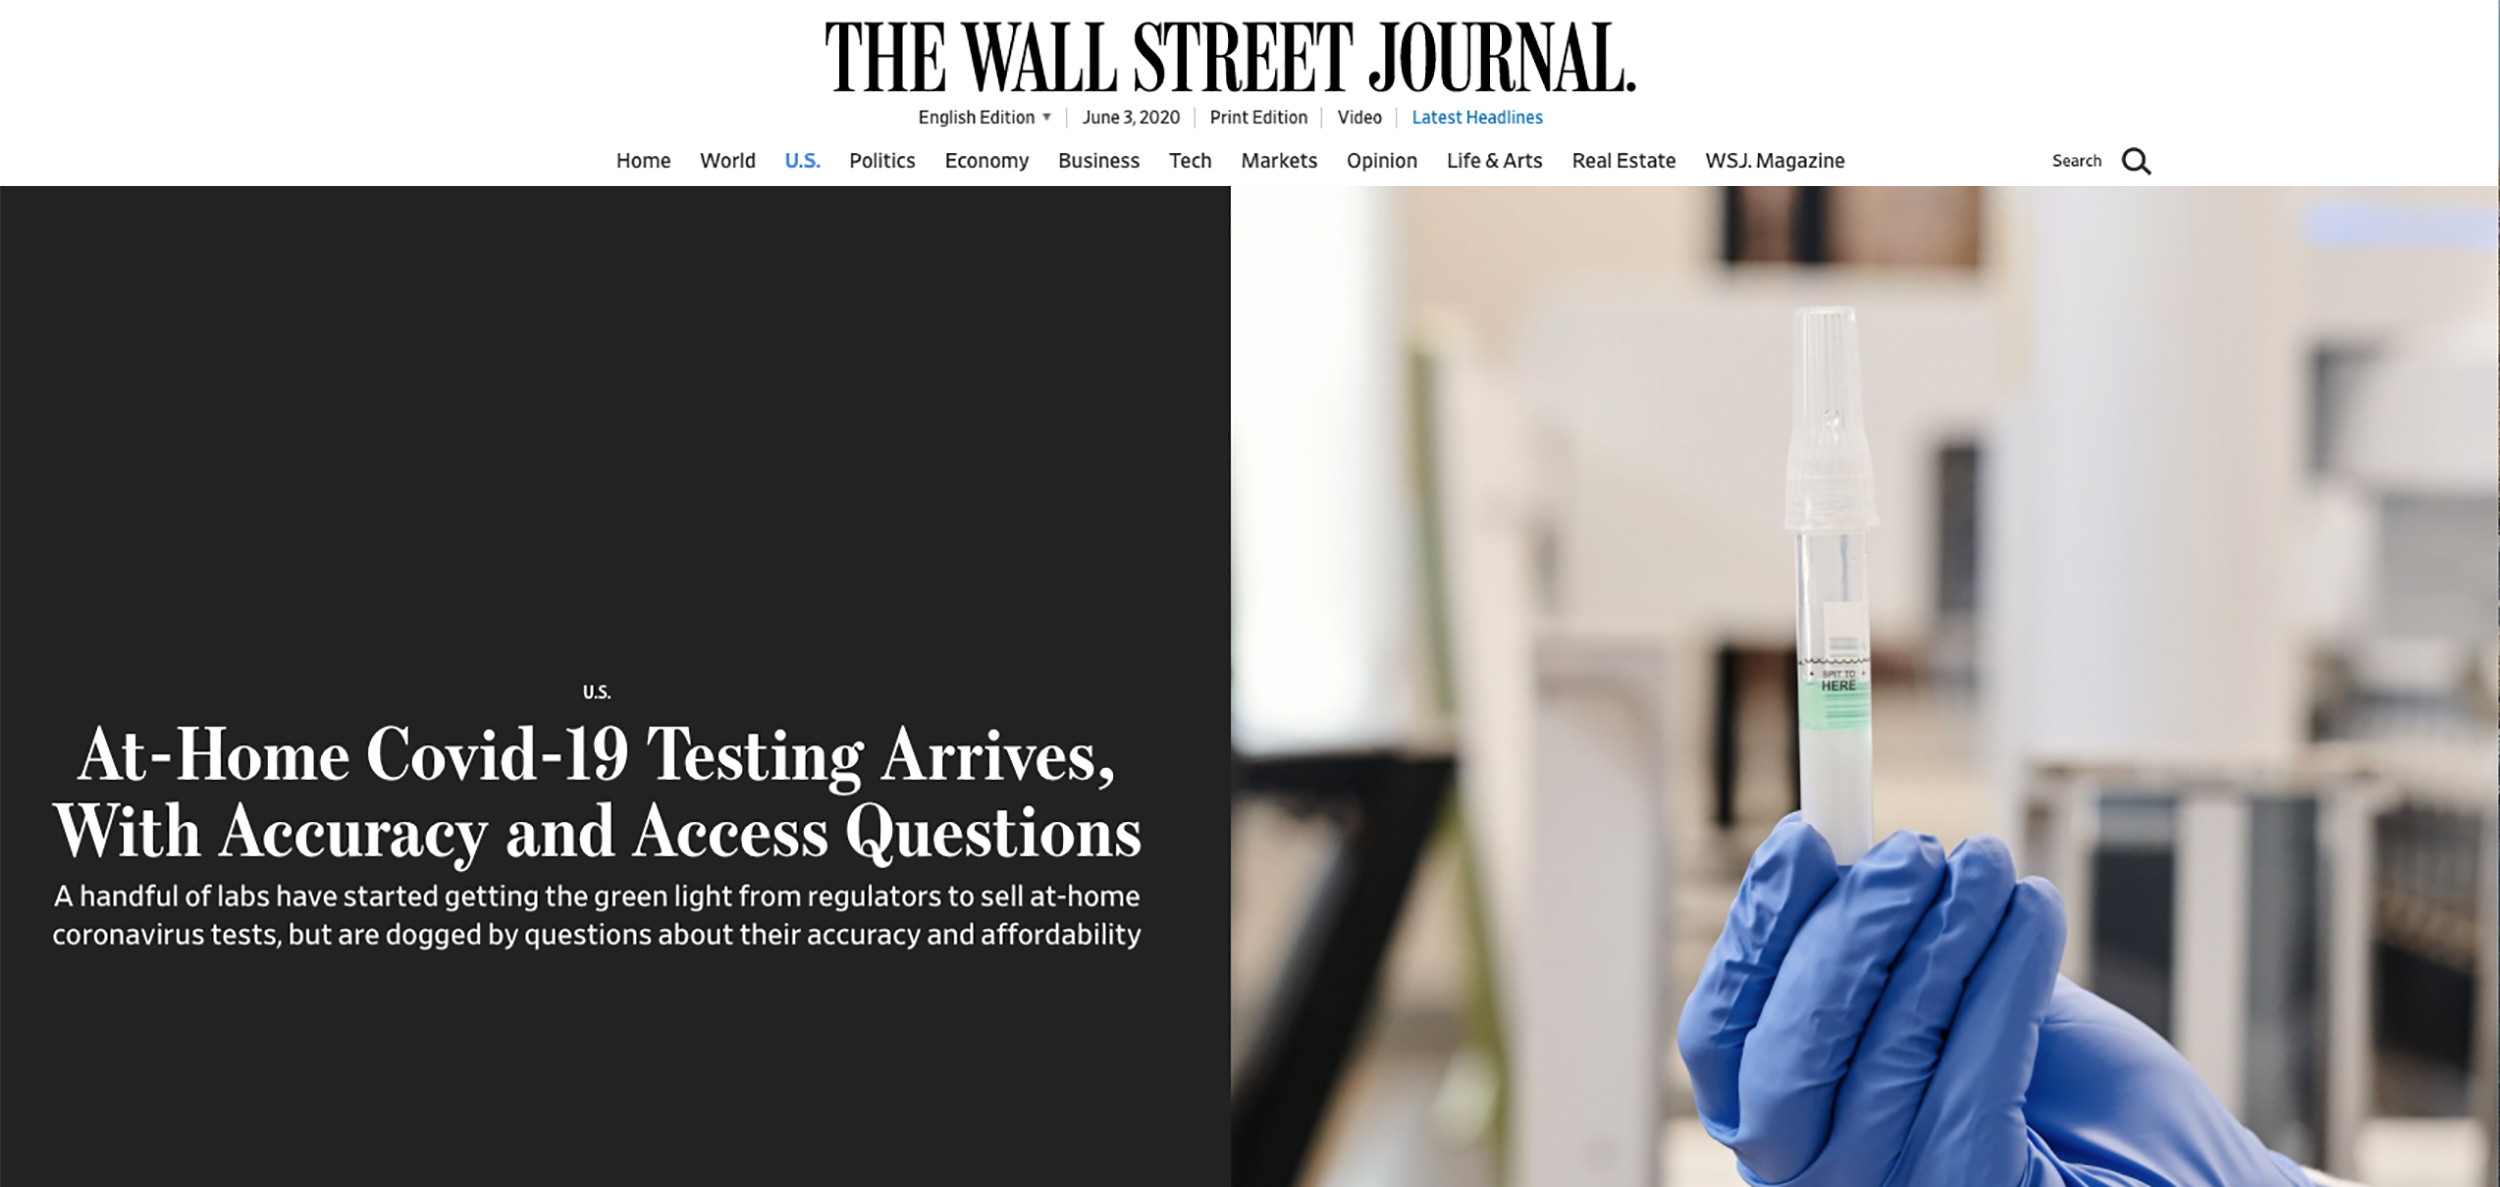 THE WALL STREET JOURNAL-At-Home COVID-19 Testing Arrives With Questions